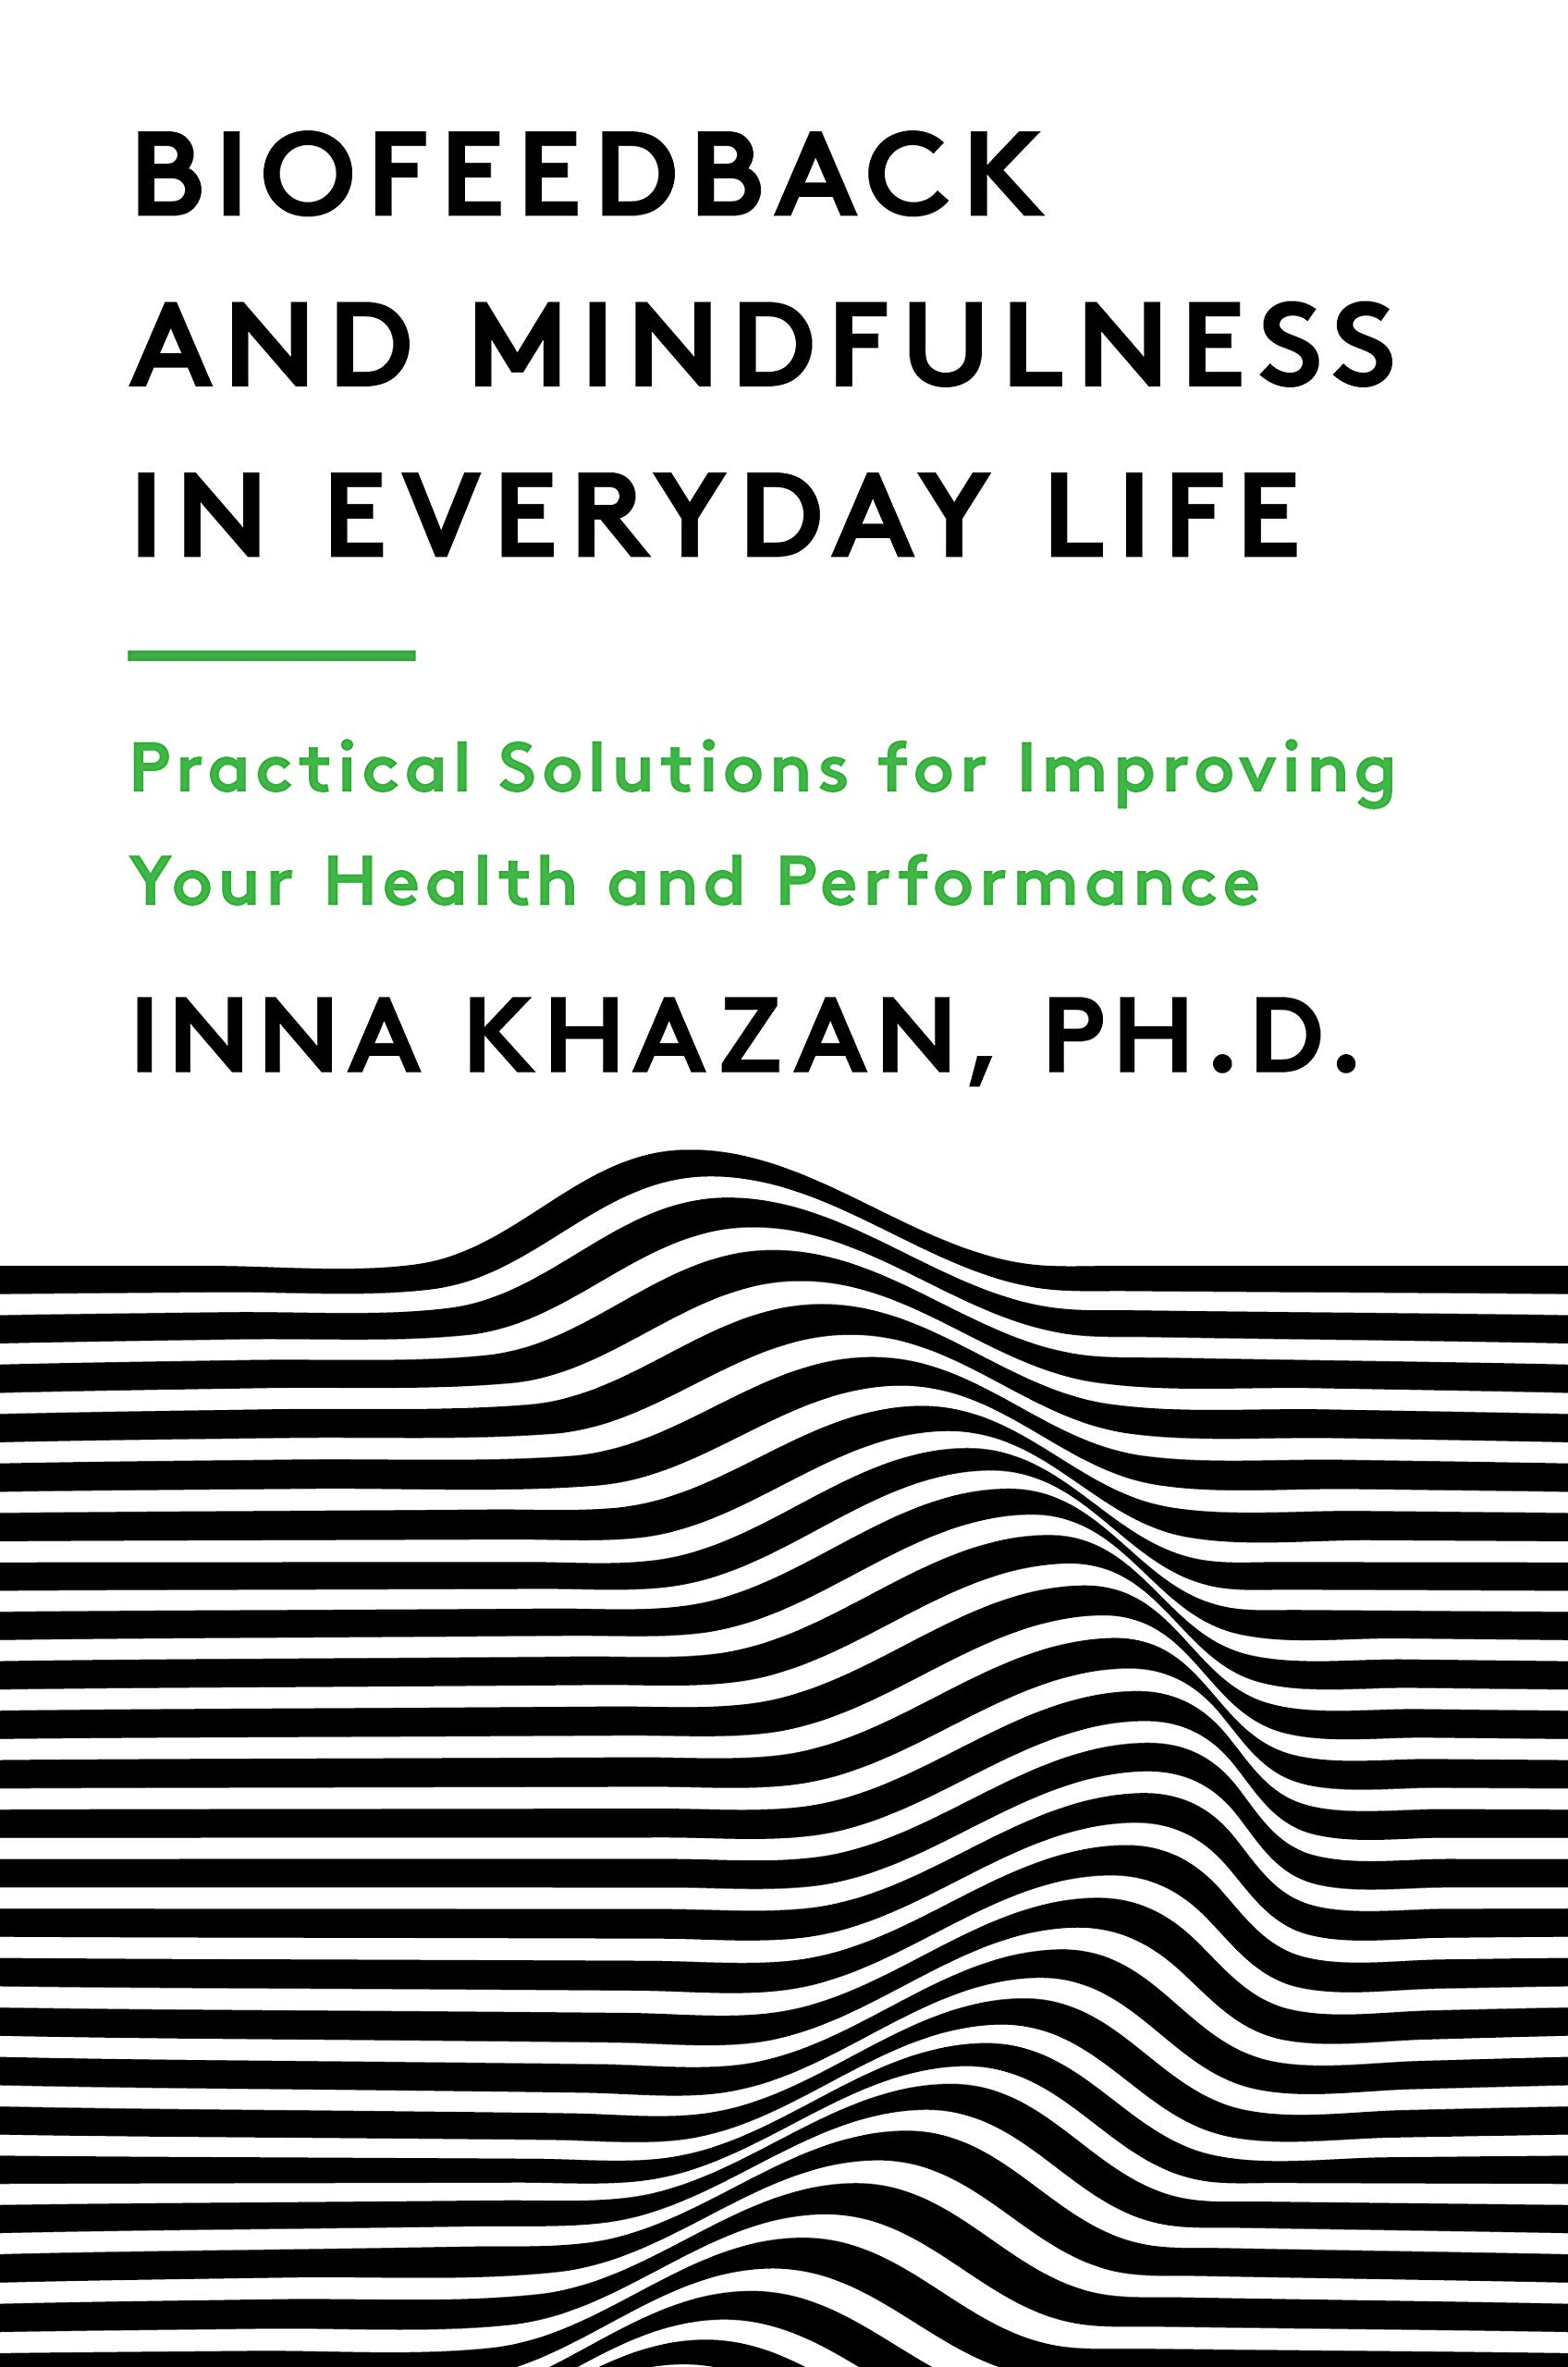 Biofeedback And Mindfulness In Everyday Life  Practical Solutions For Improving Your Health And Performance  English Edition